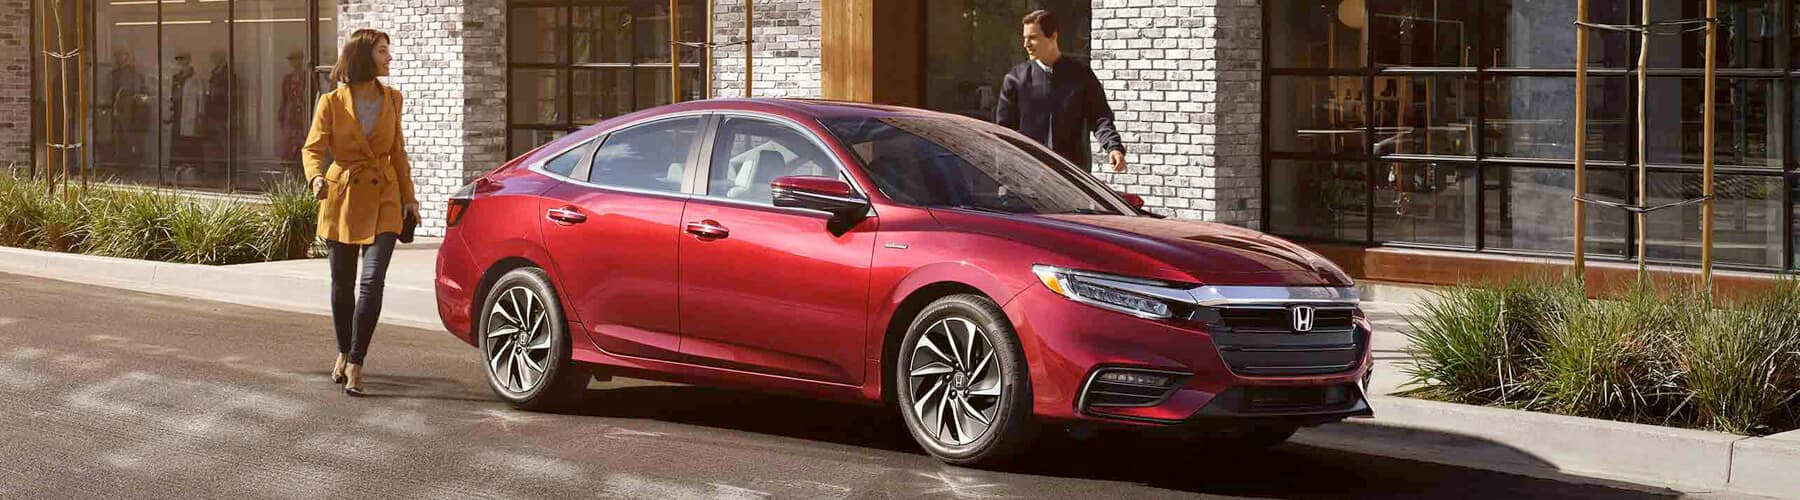 2020 Honda Insight Hybrid Slider